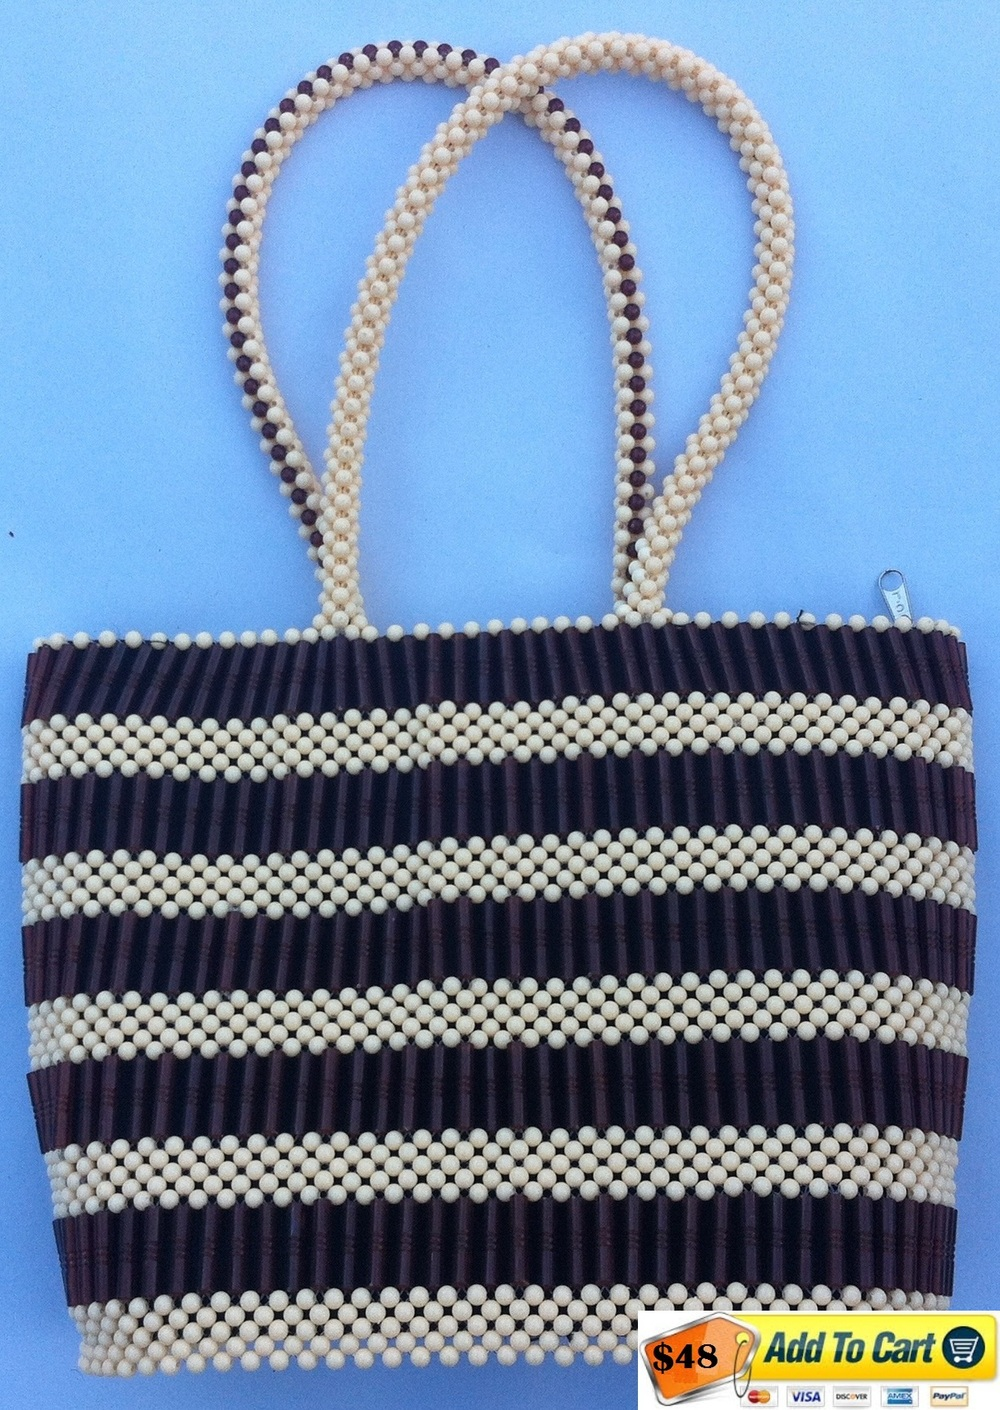 AWB 107. African Women's Bag